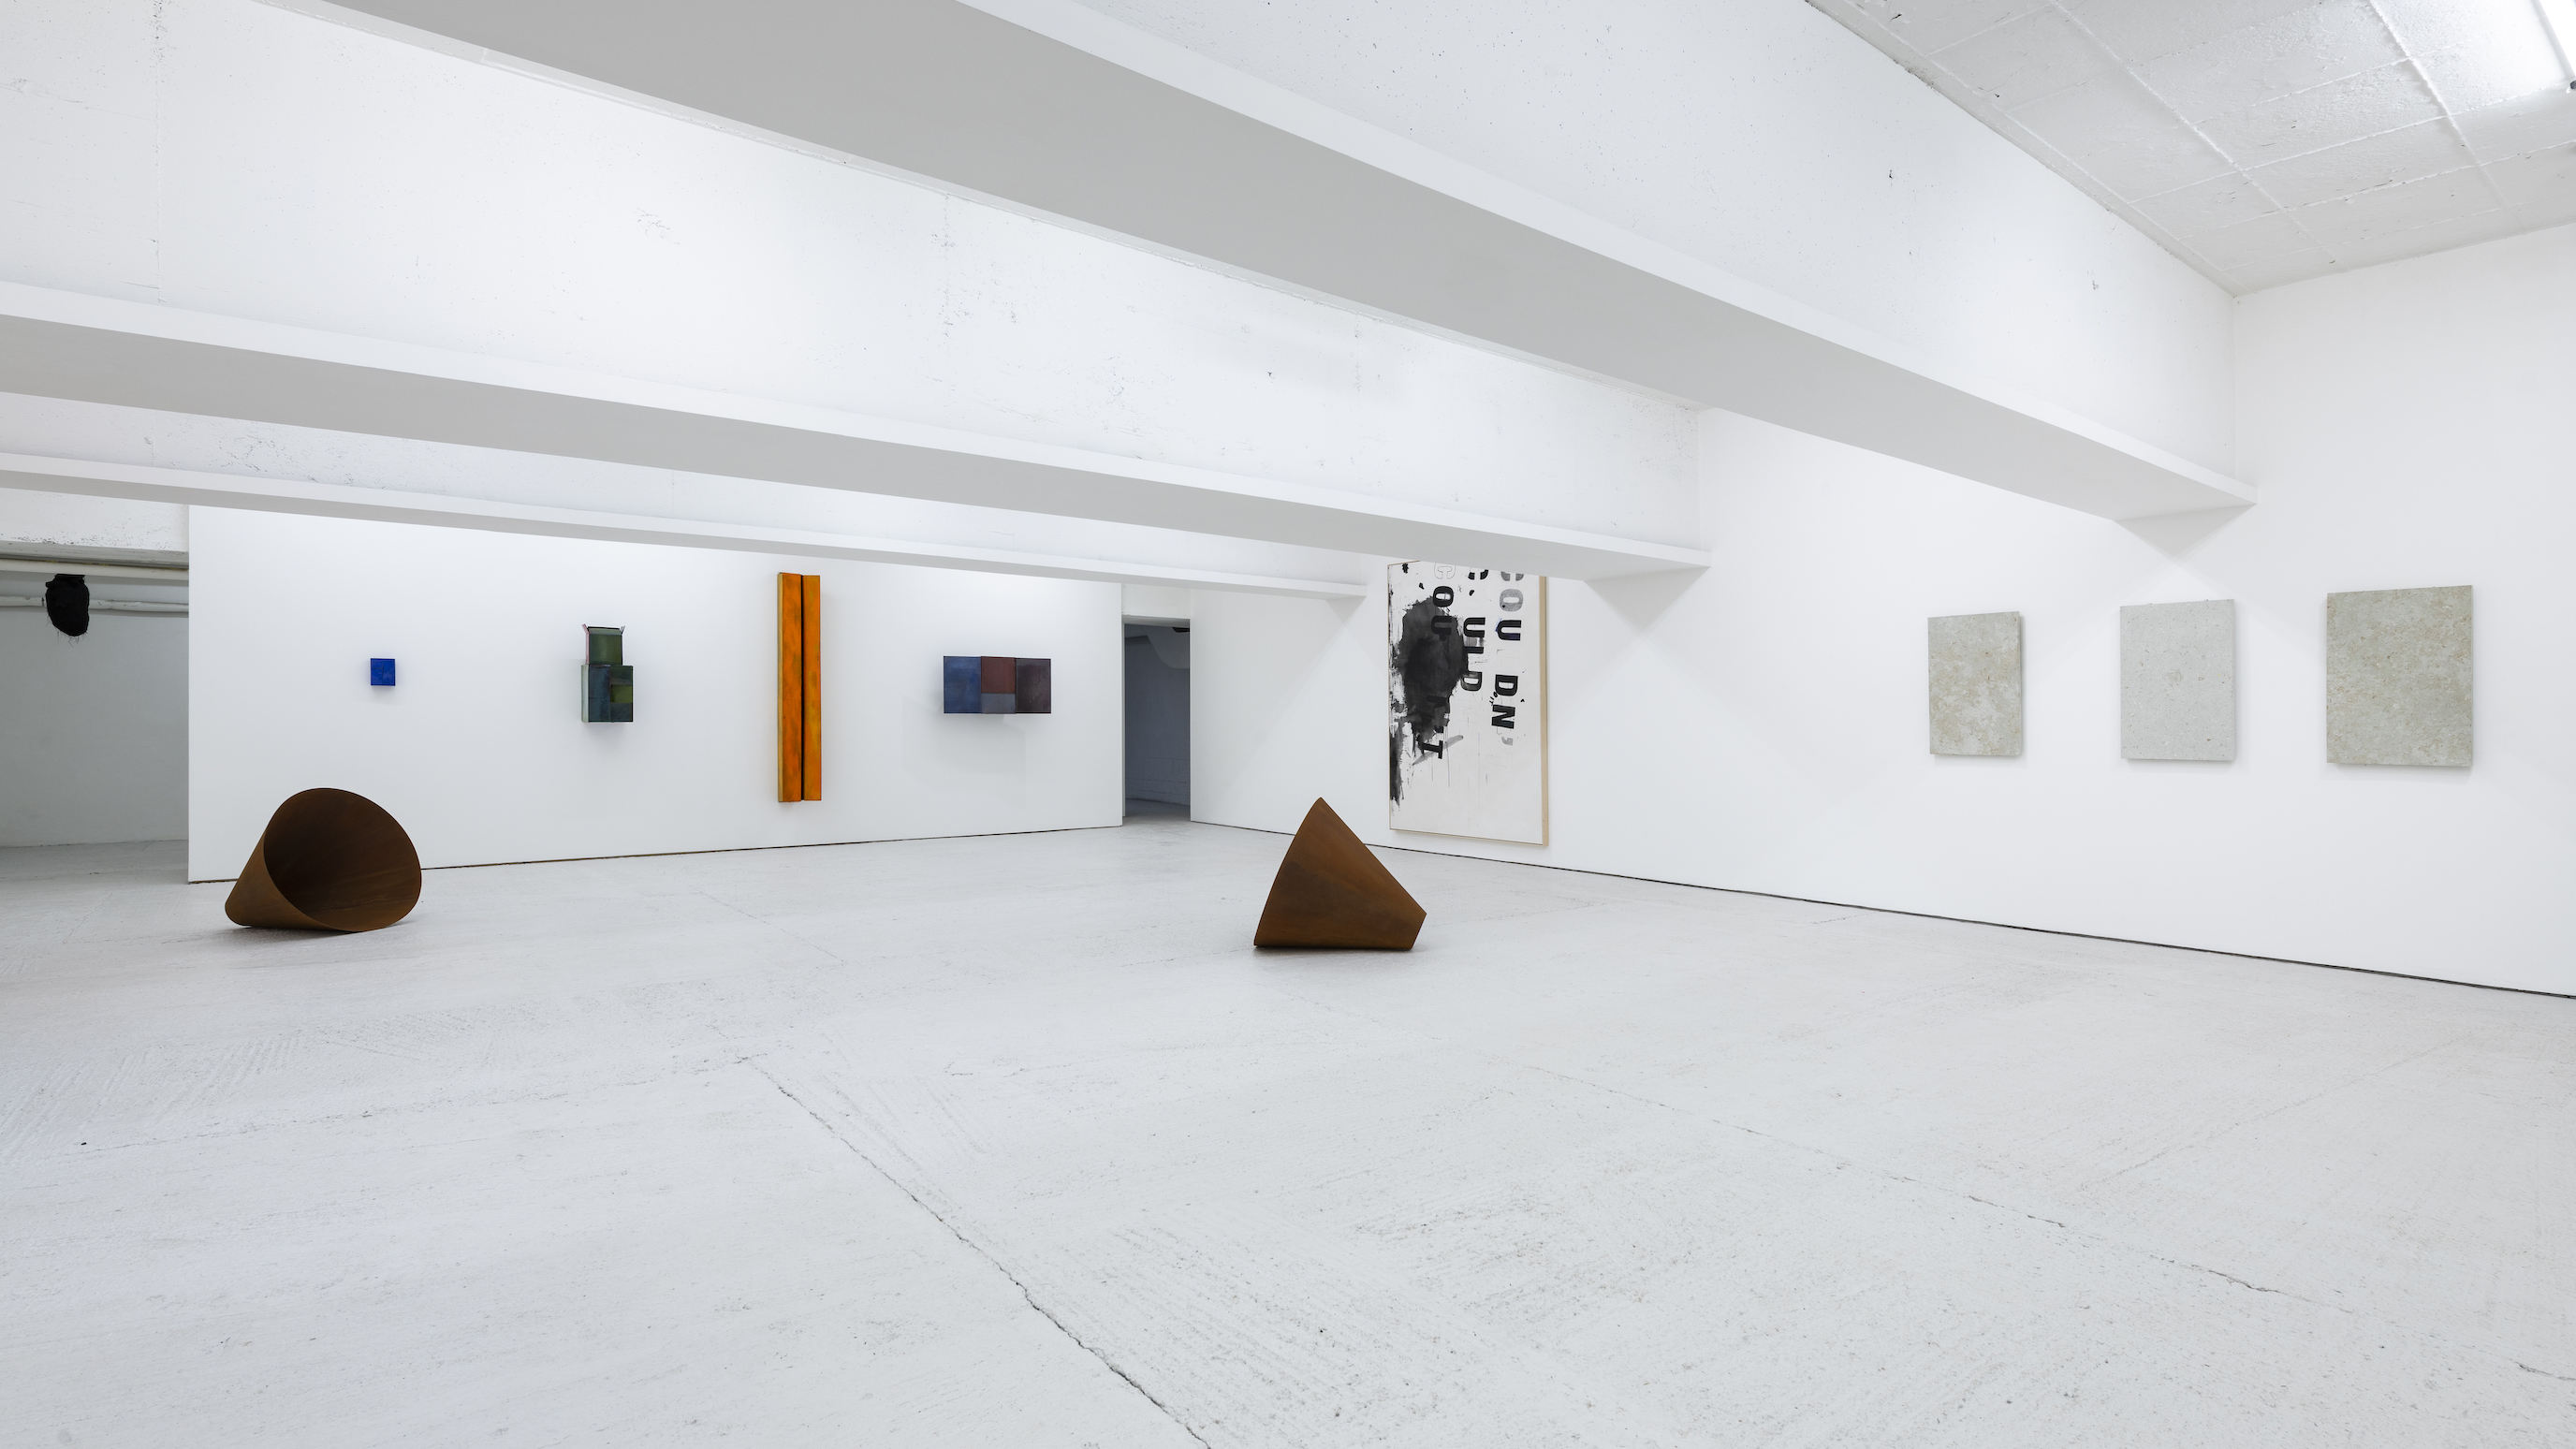 Installation view 8, Open Call, König London, 2020. photo by Damian Griffiths